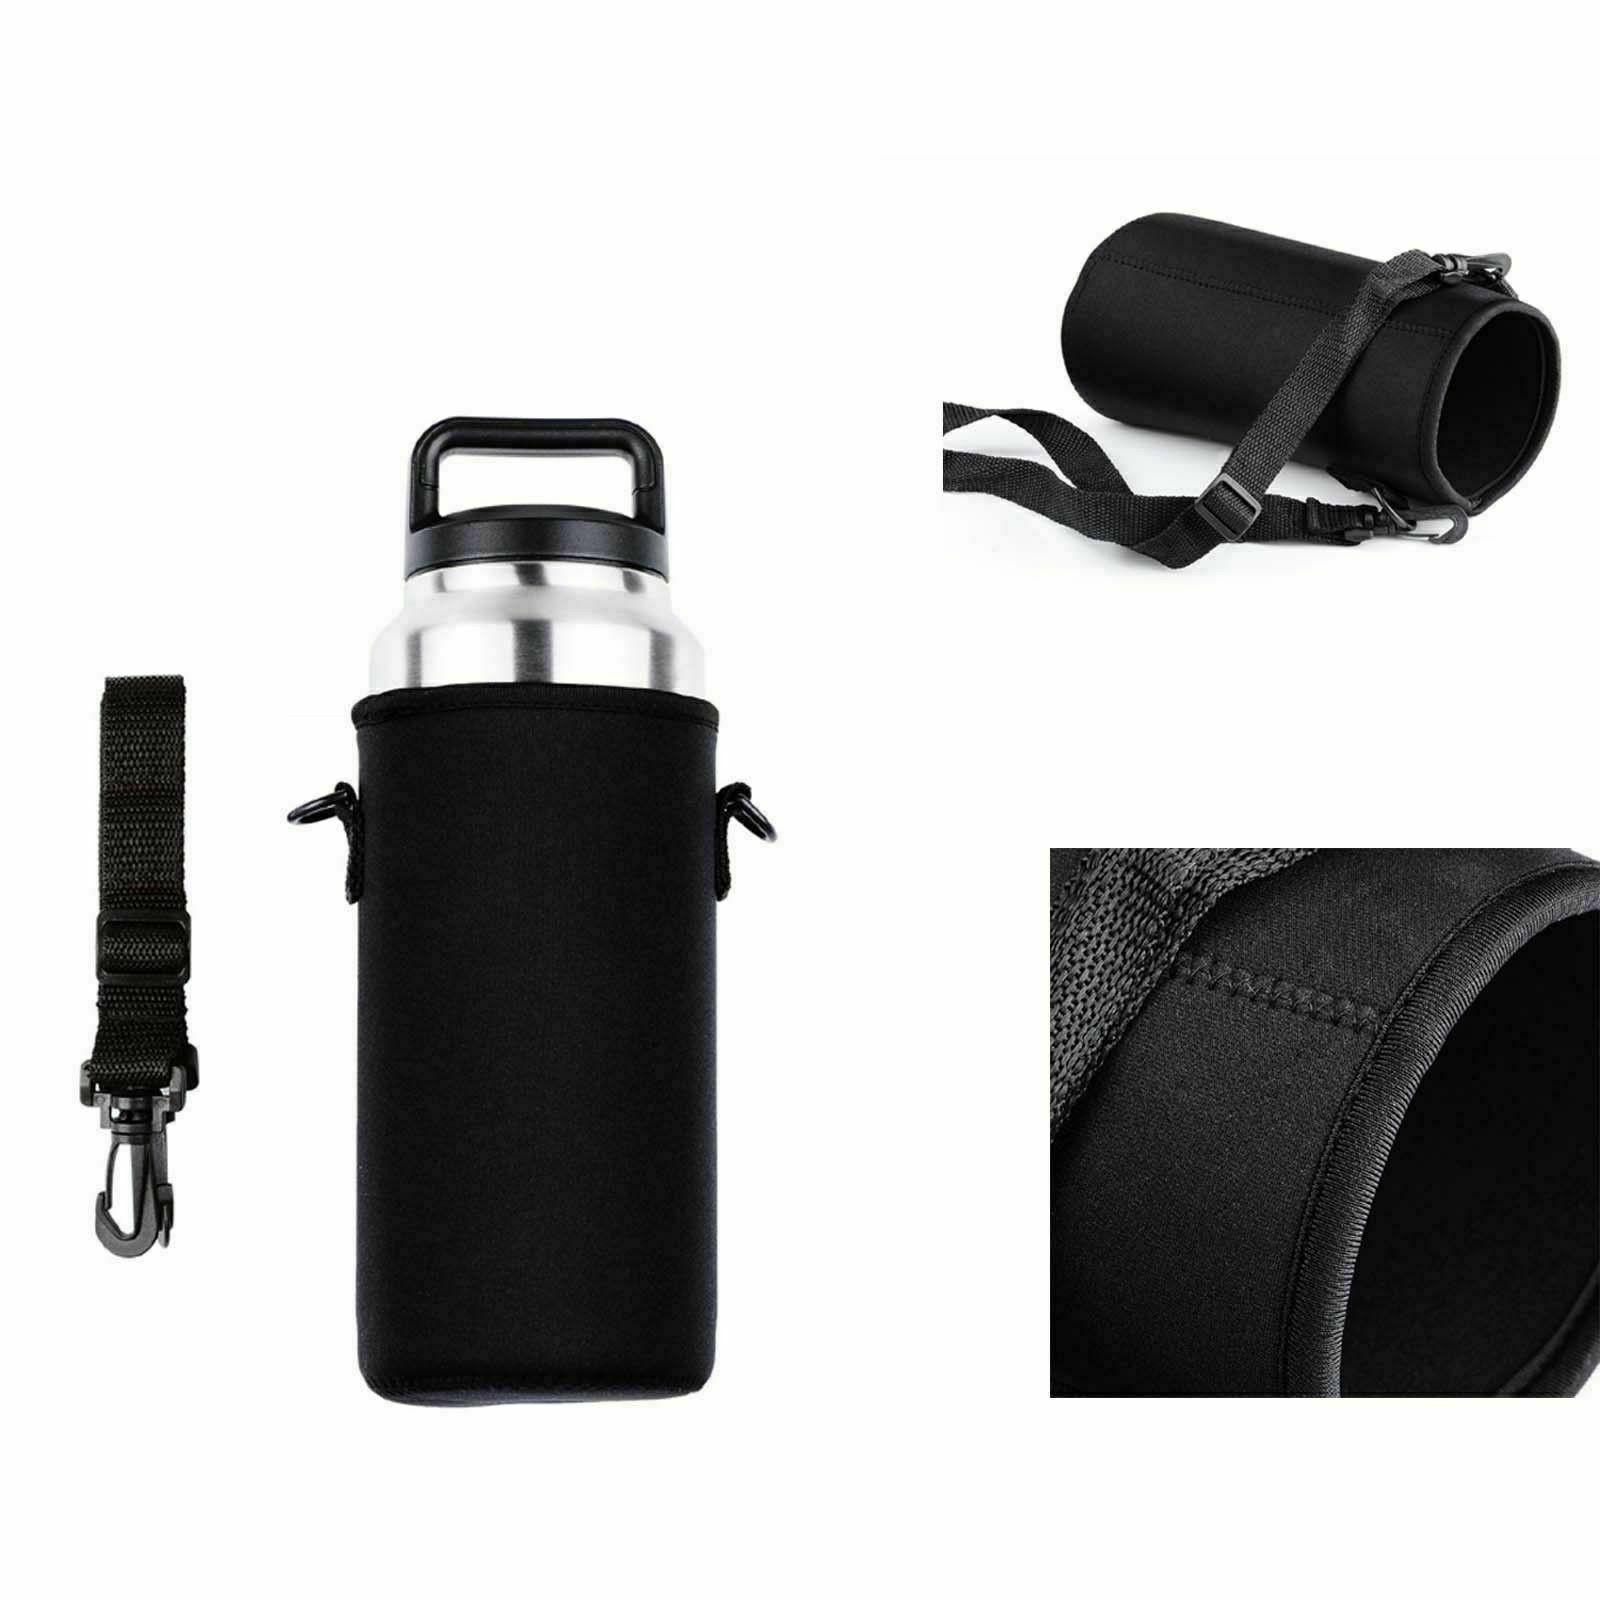 2PCS Sleeve Carry Bag for Bottle Handle